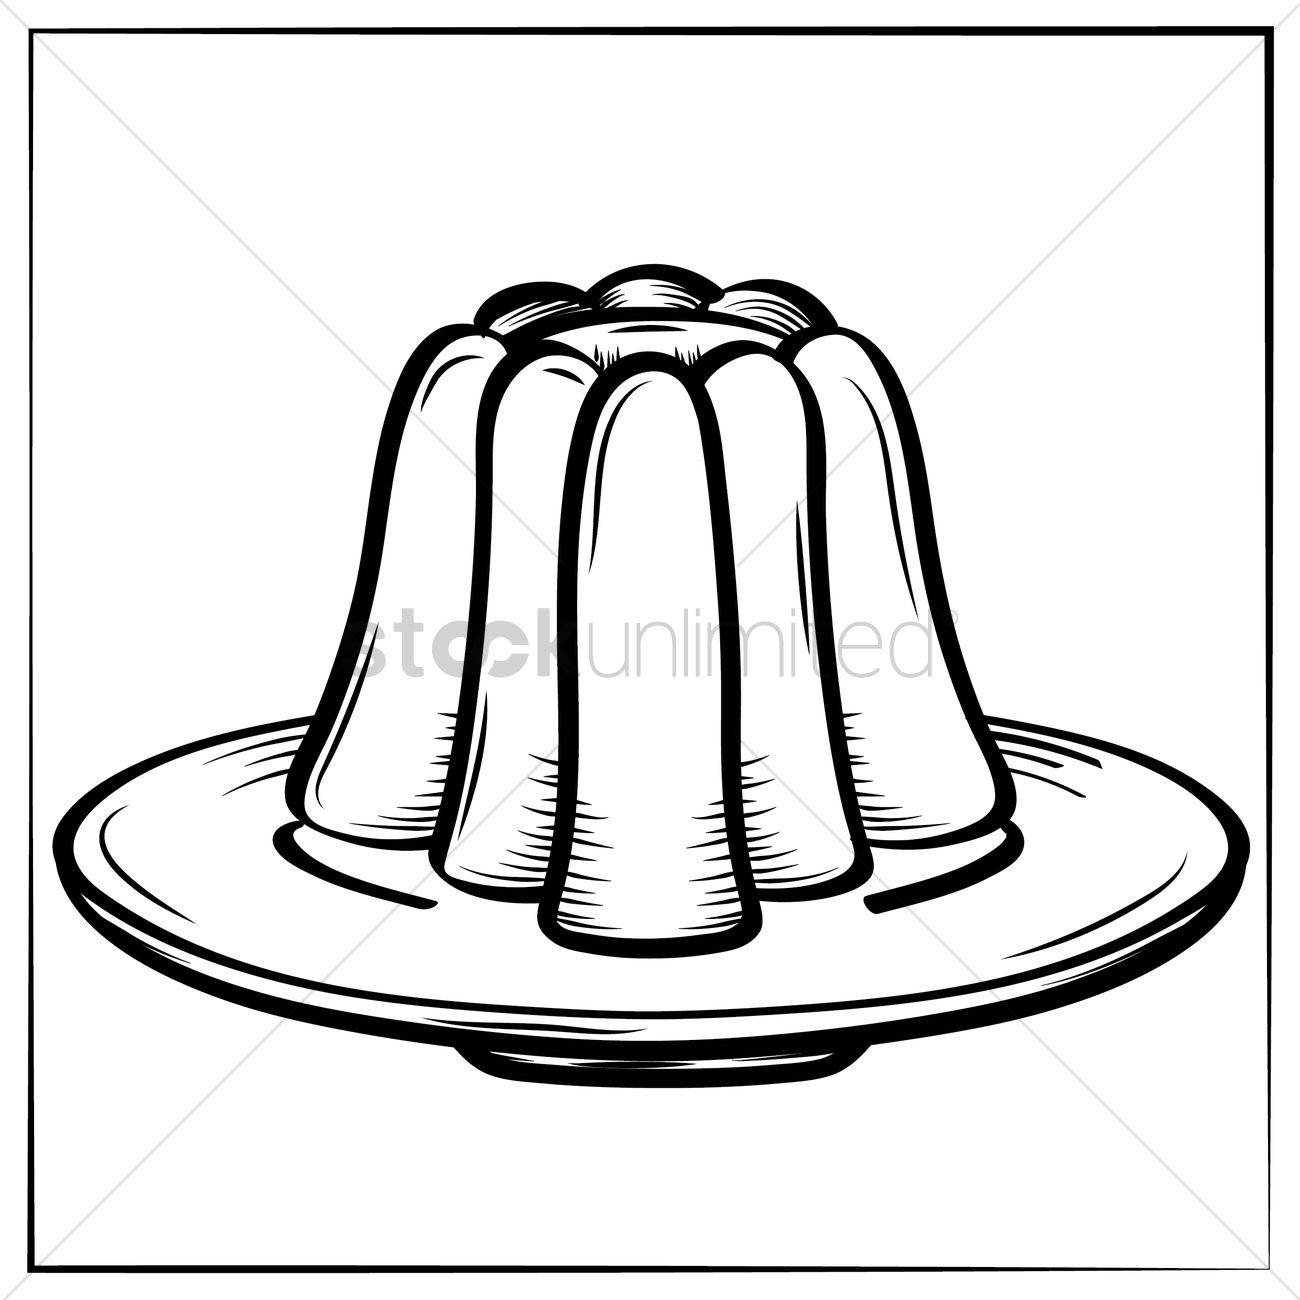 Jello clipart black and white » Clipart Station.